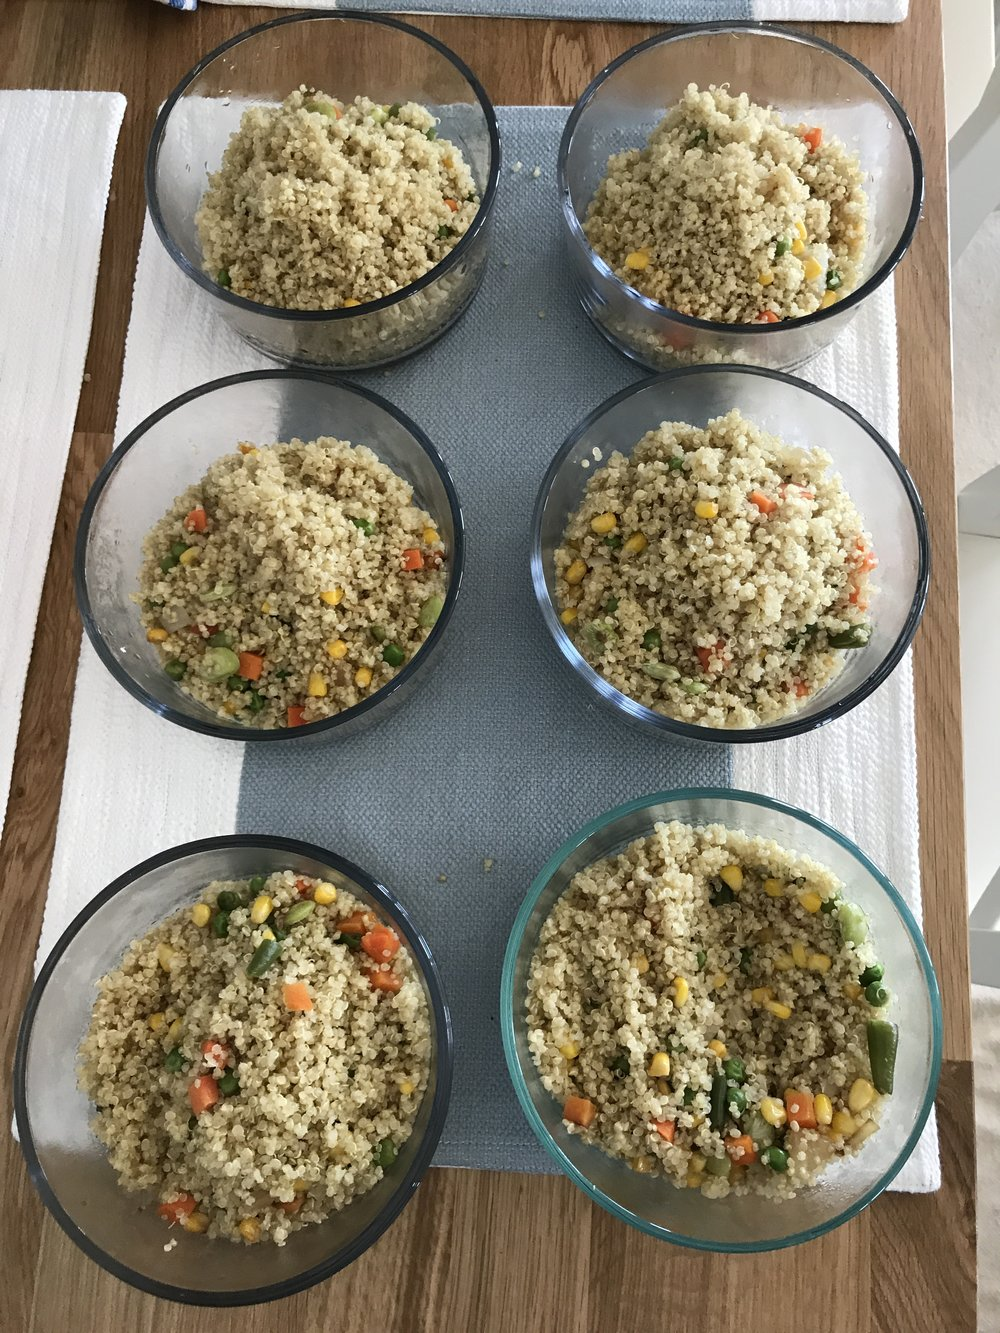 Featured is a fabulous quinoa medly option - mix of fun veggies,cooked down yellow onion